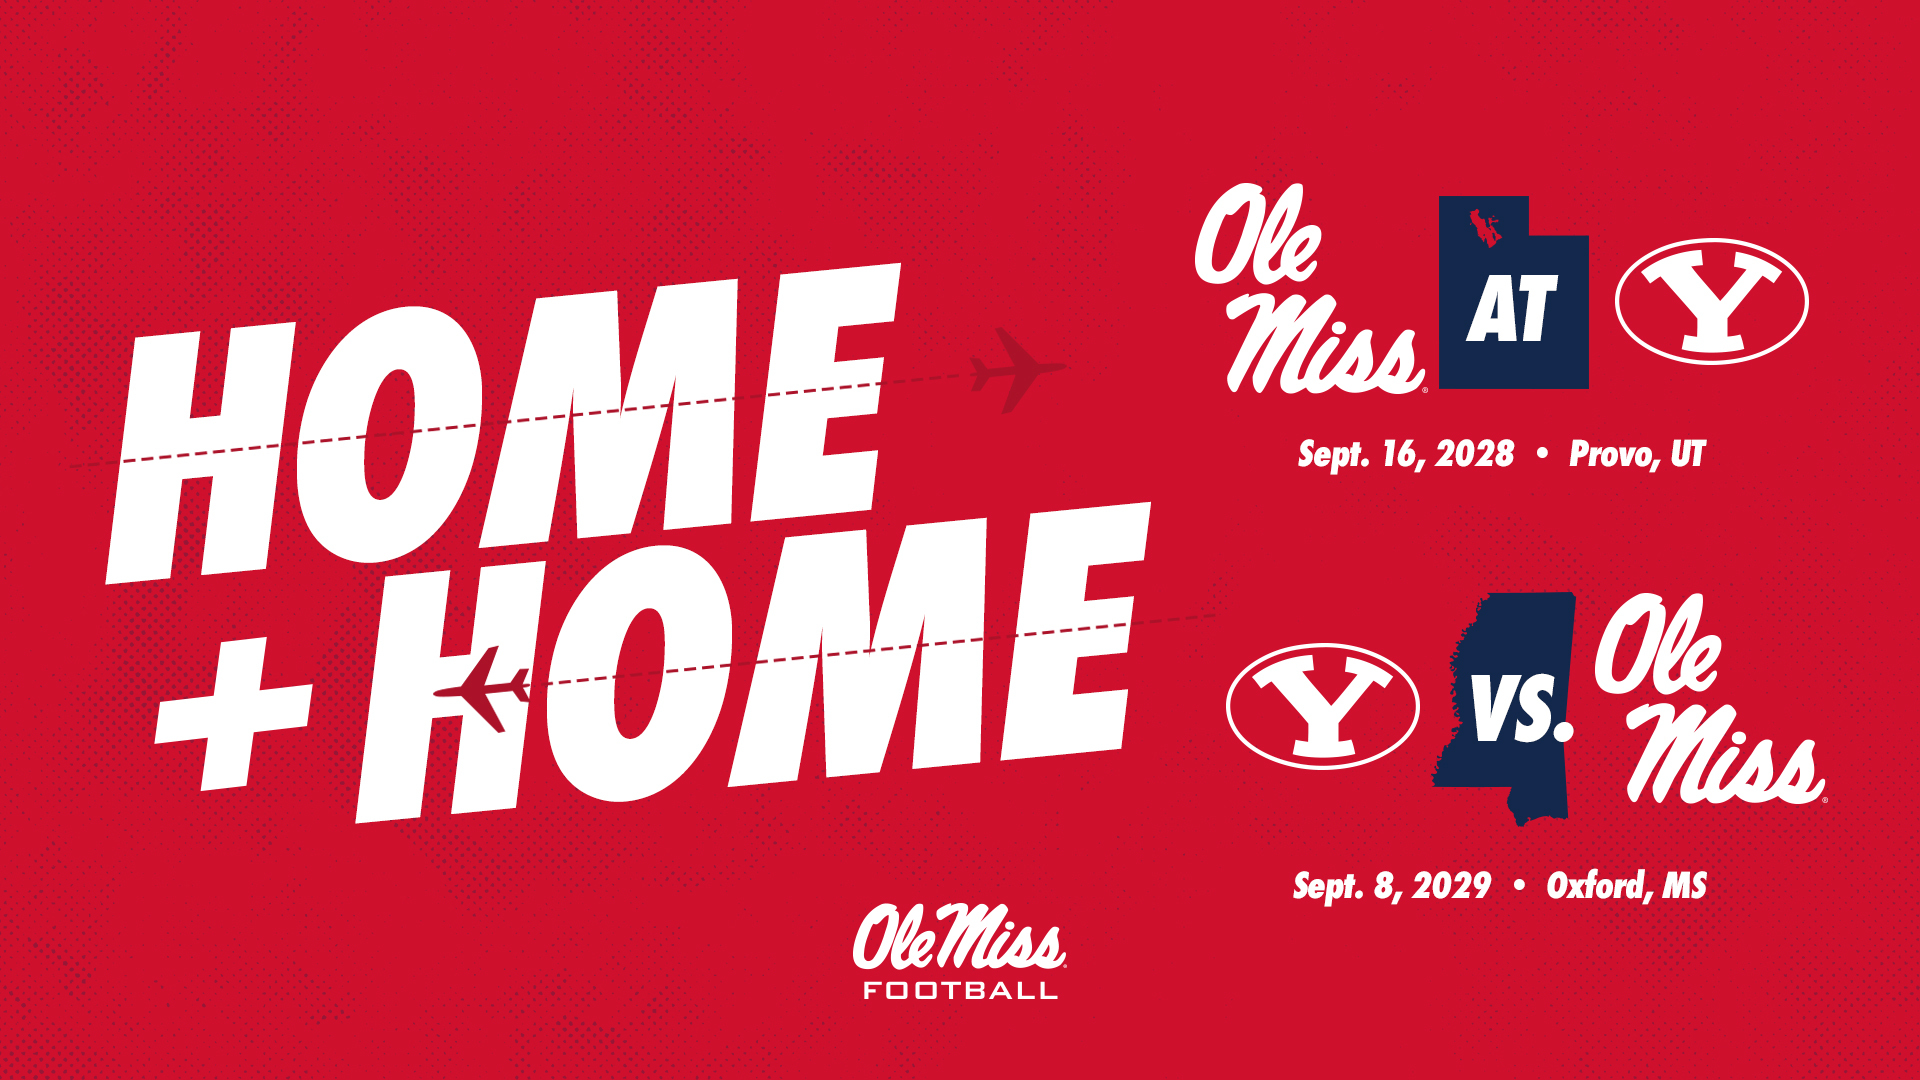 Byu Calendar 2022.Football Schedules Home And Home Series With Byu Ole Miss Athletics